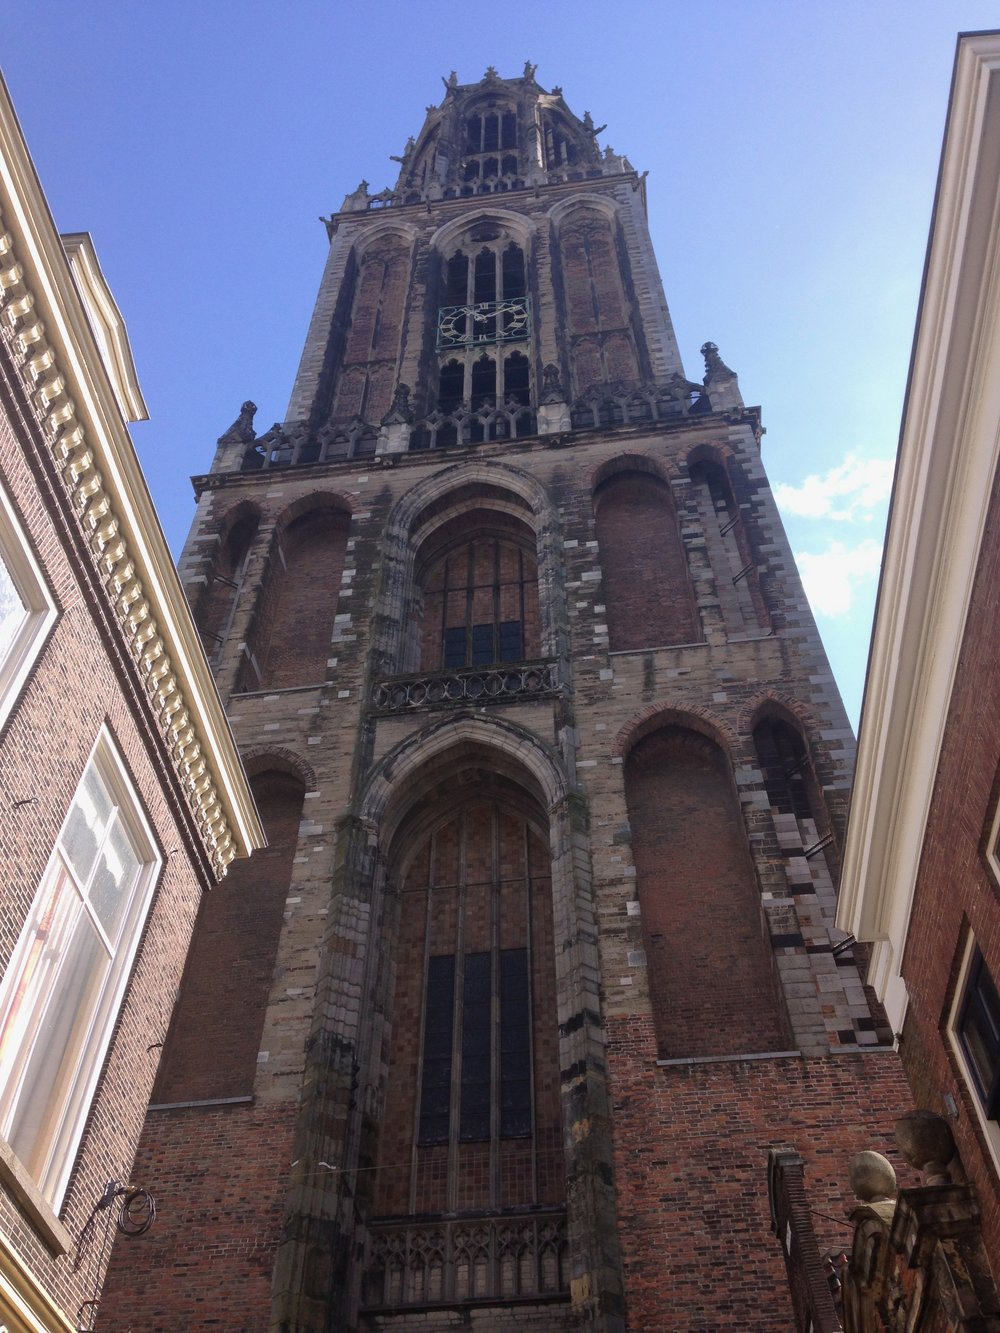 The Dom Tower. Highest church in the Netherlands.